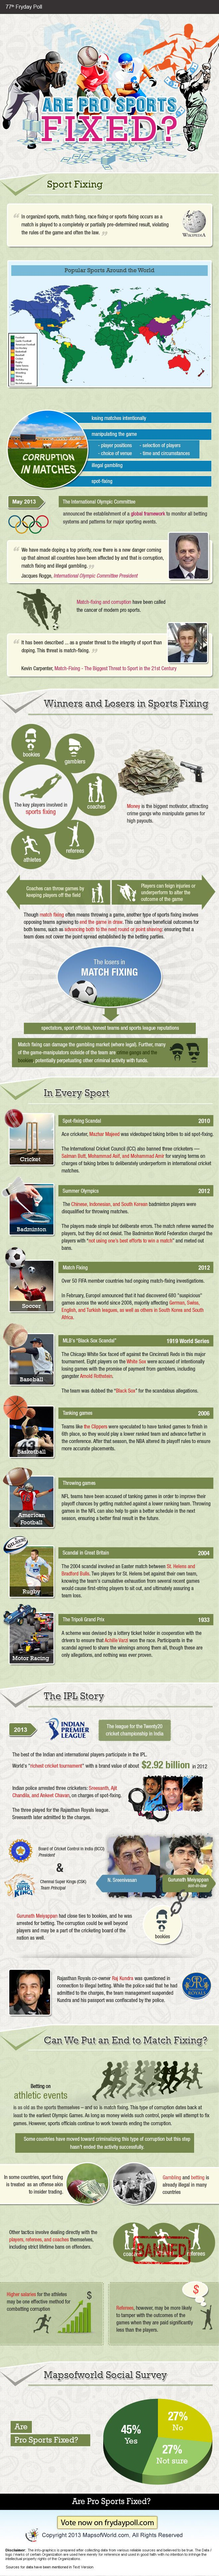 Find In-depth Review And Infographic About Professional Sports. Learn more about sport/match fixing, the key players involved in it, famous scandals in different sports, the IPL spot fixing scandal and how can match fixing be controlled.